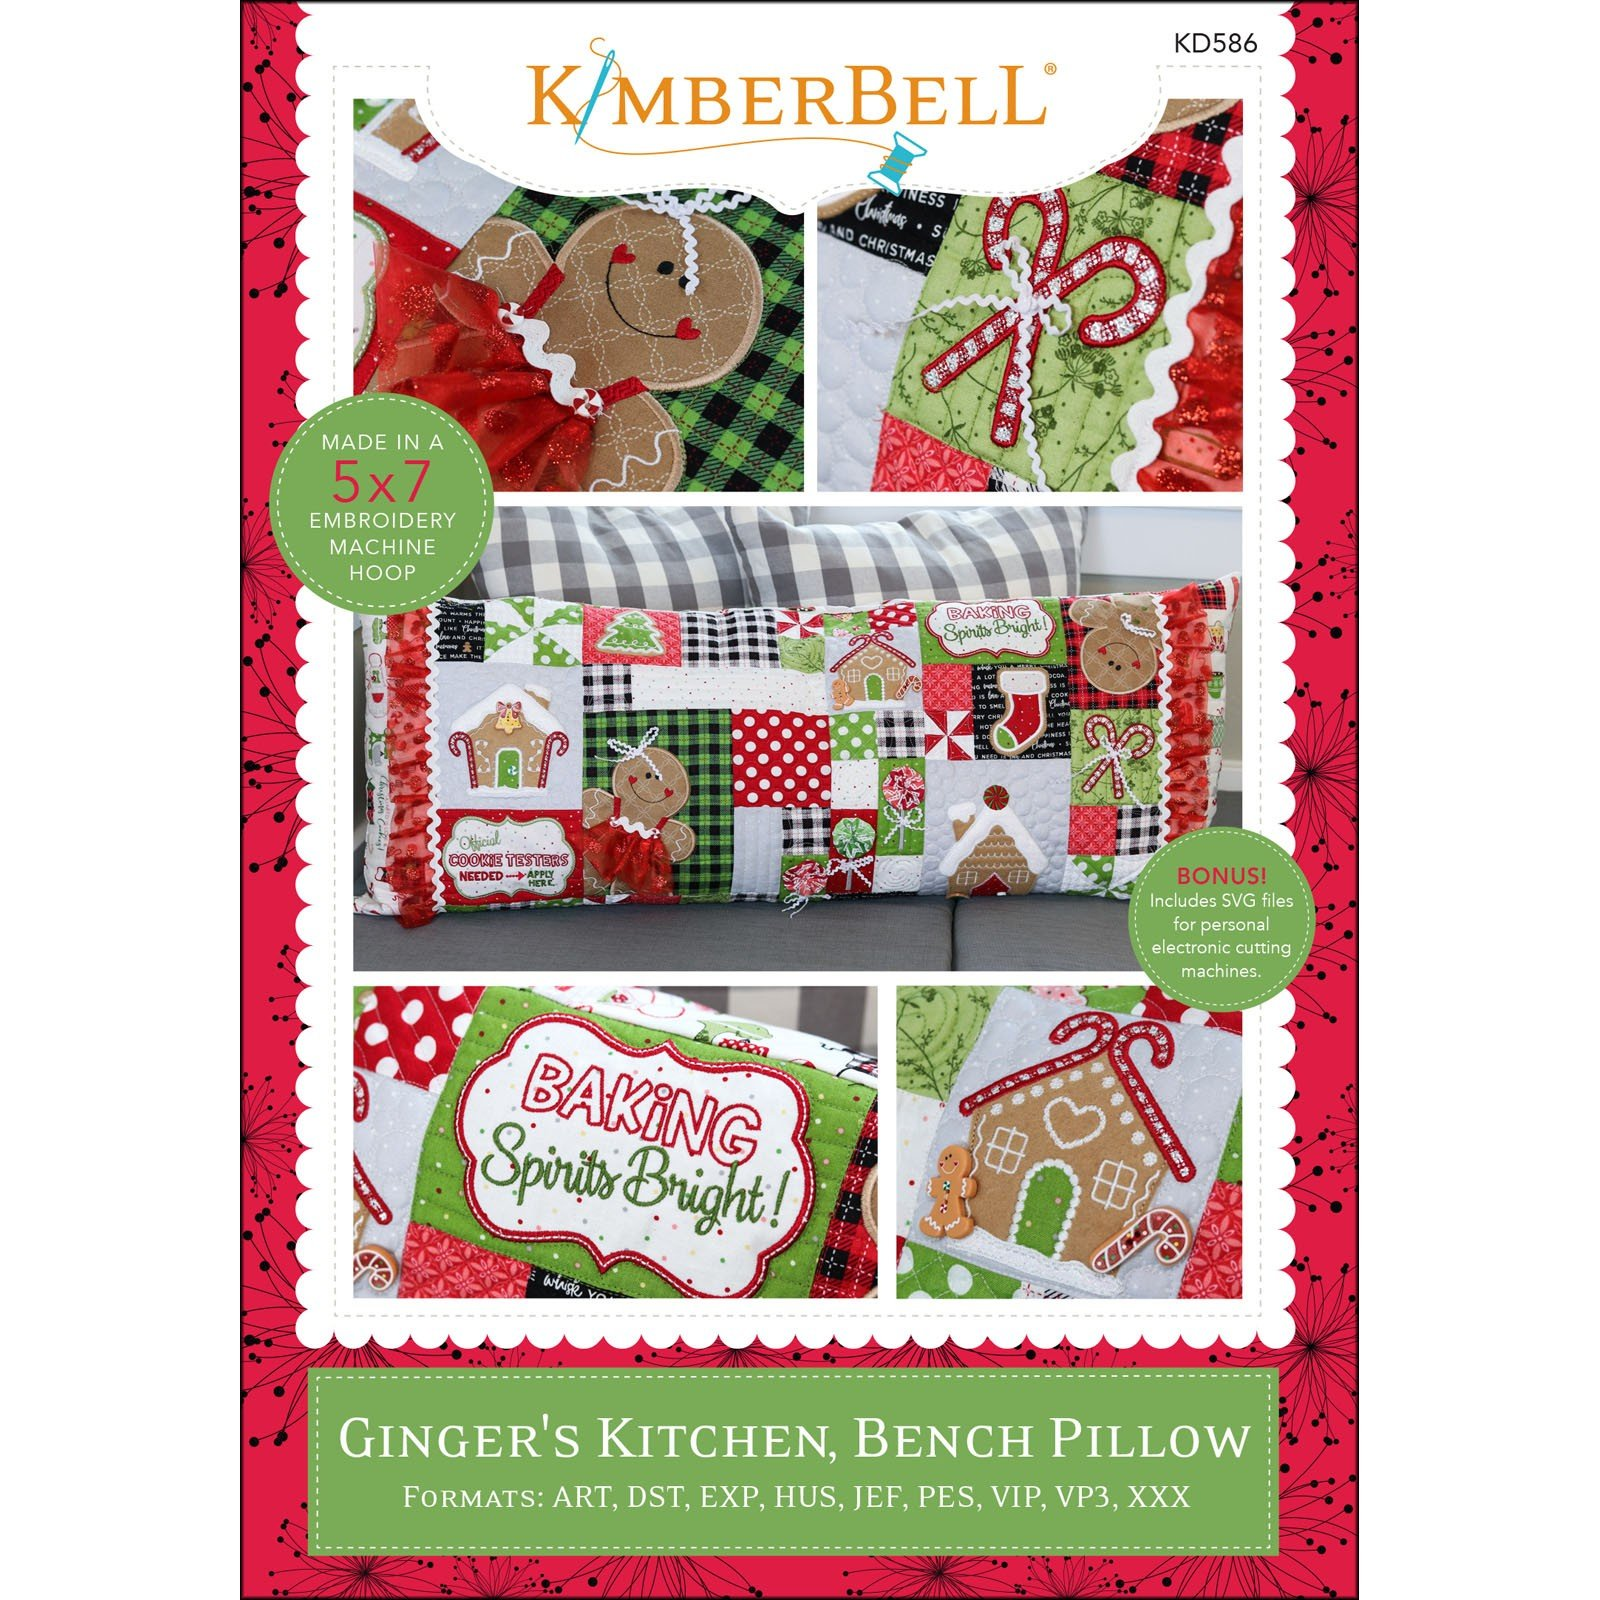 Ginger's Kitchen Bench Pillow (Embroidery CD) by Kimberbell